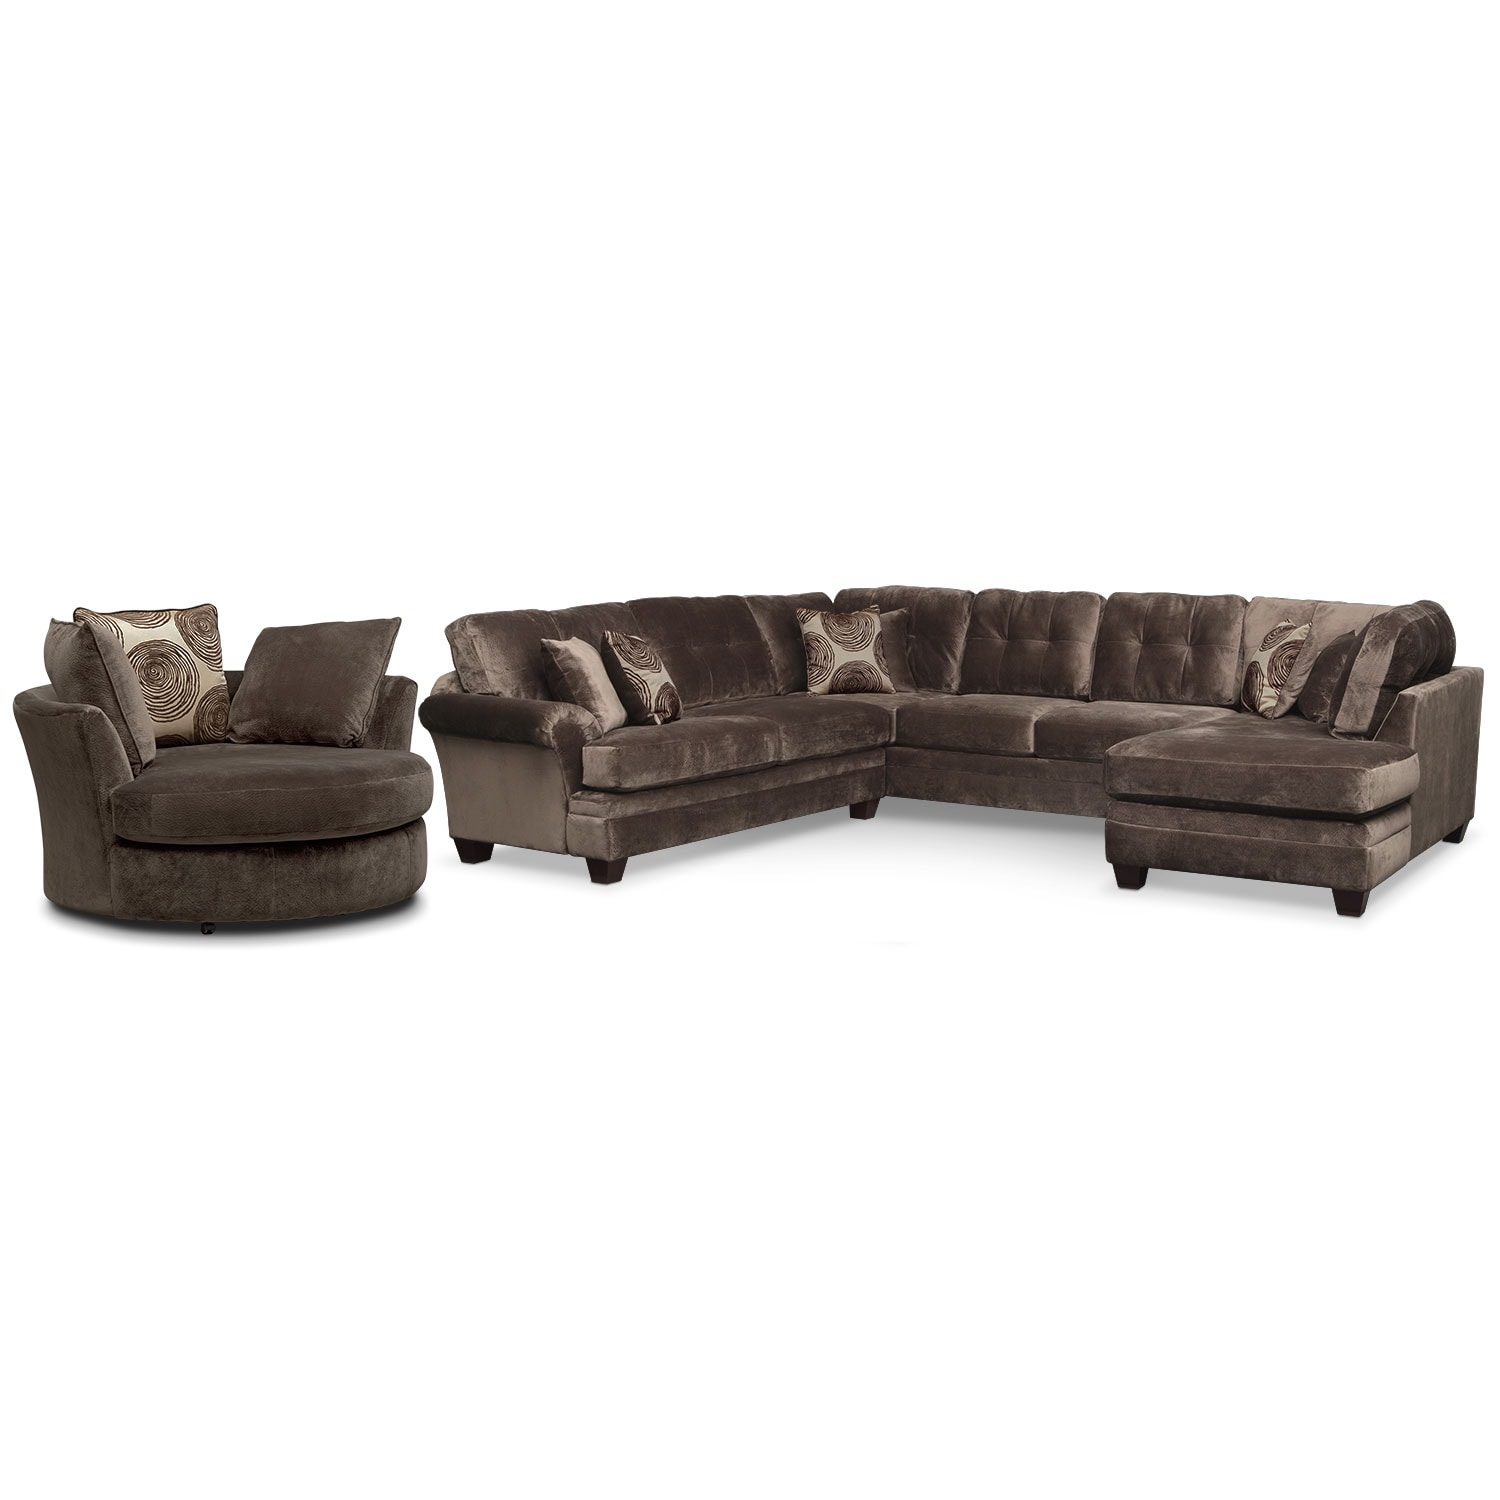 Cordelle 3-Piece Sectional and Swivel Chair Set - Chocolate